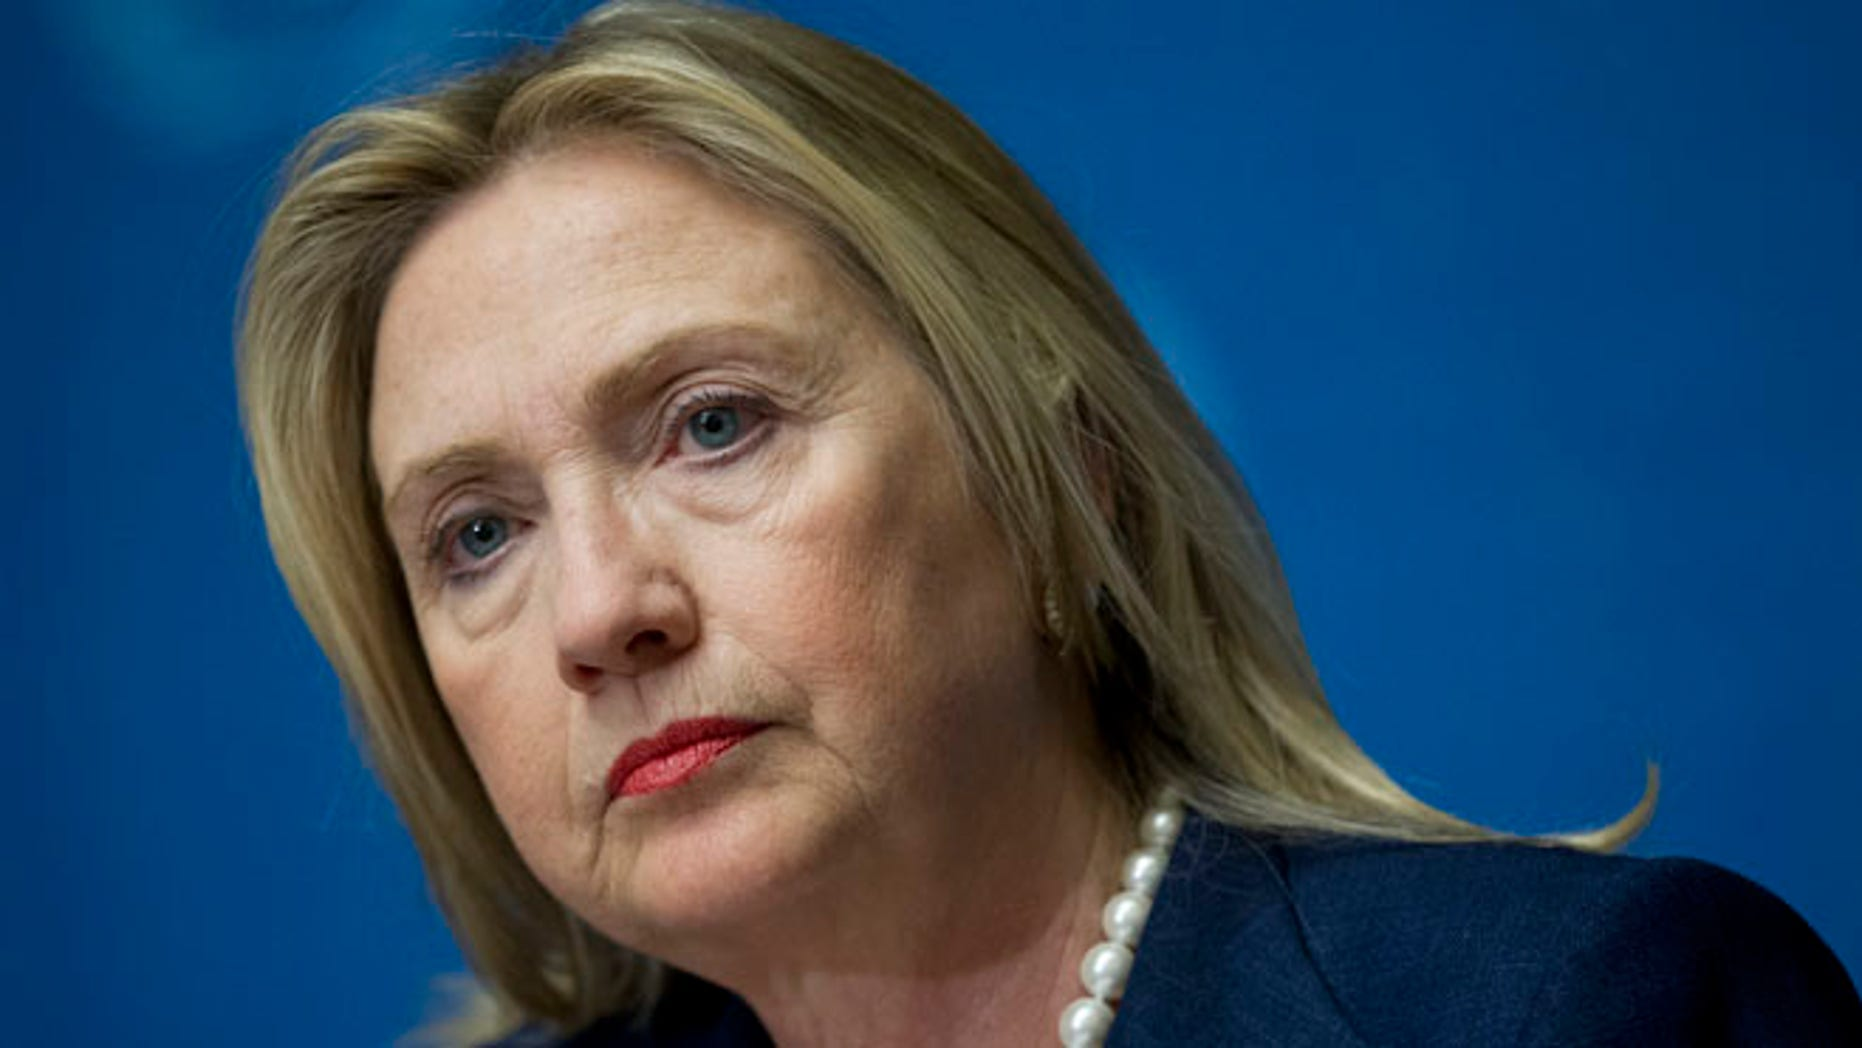 U.S. Secretary of State Hillary Rodham Clinton pauses during a news conference following the Action Group on Syria meeting in the Palace of Nations, Saturday, June 30, 2012, at the United Nations' Headquarters in Geneva, Switzerland. (AP Photo/Haraz N. Ghanbari, Pool)